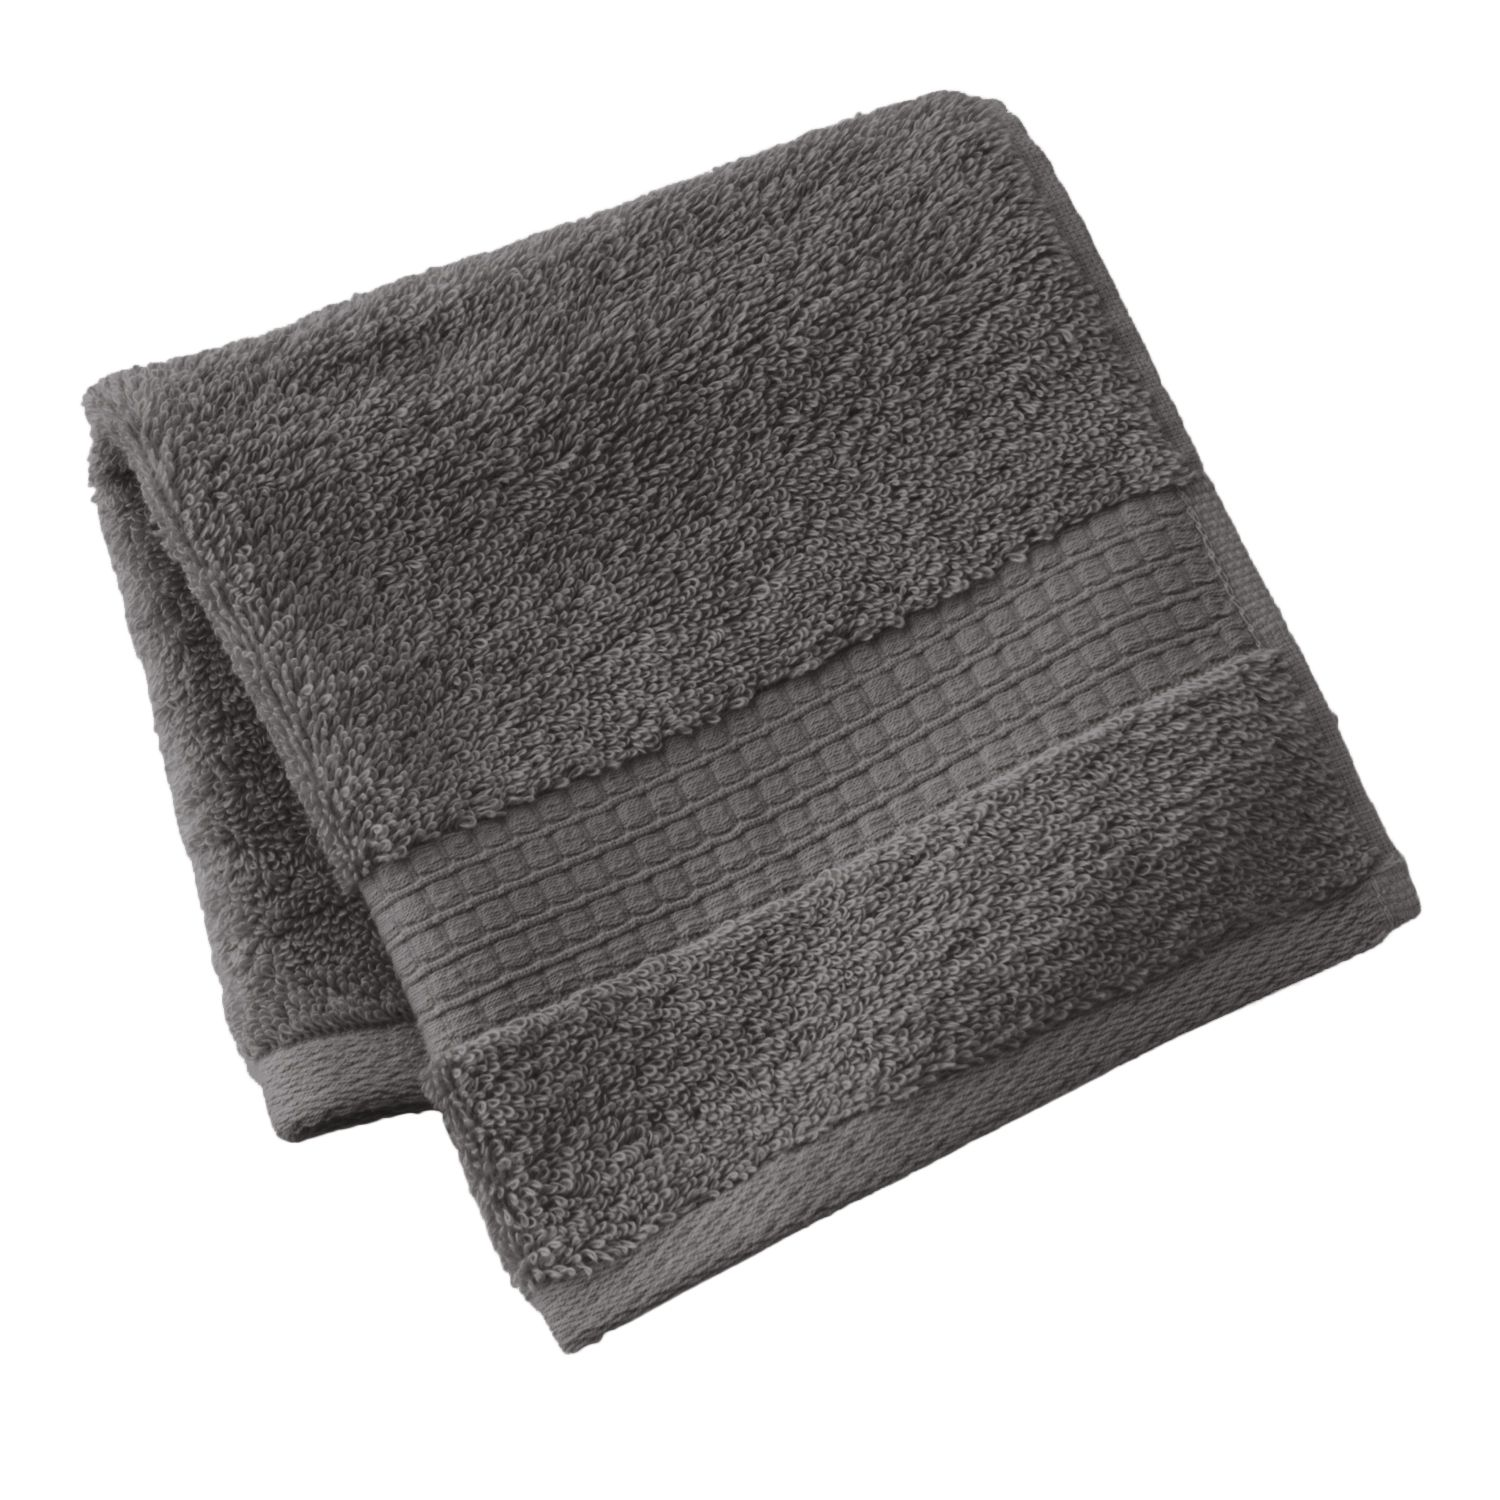 apt 9 highly absorbent solid washcloth